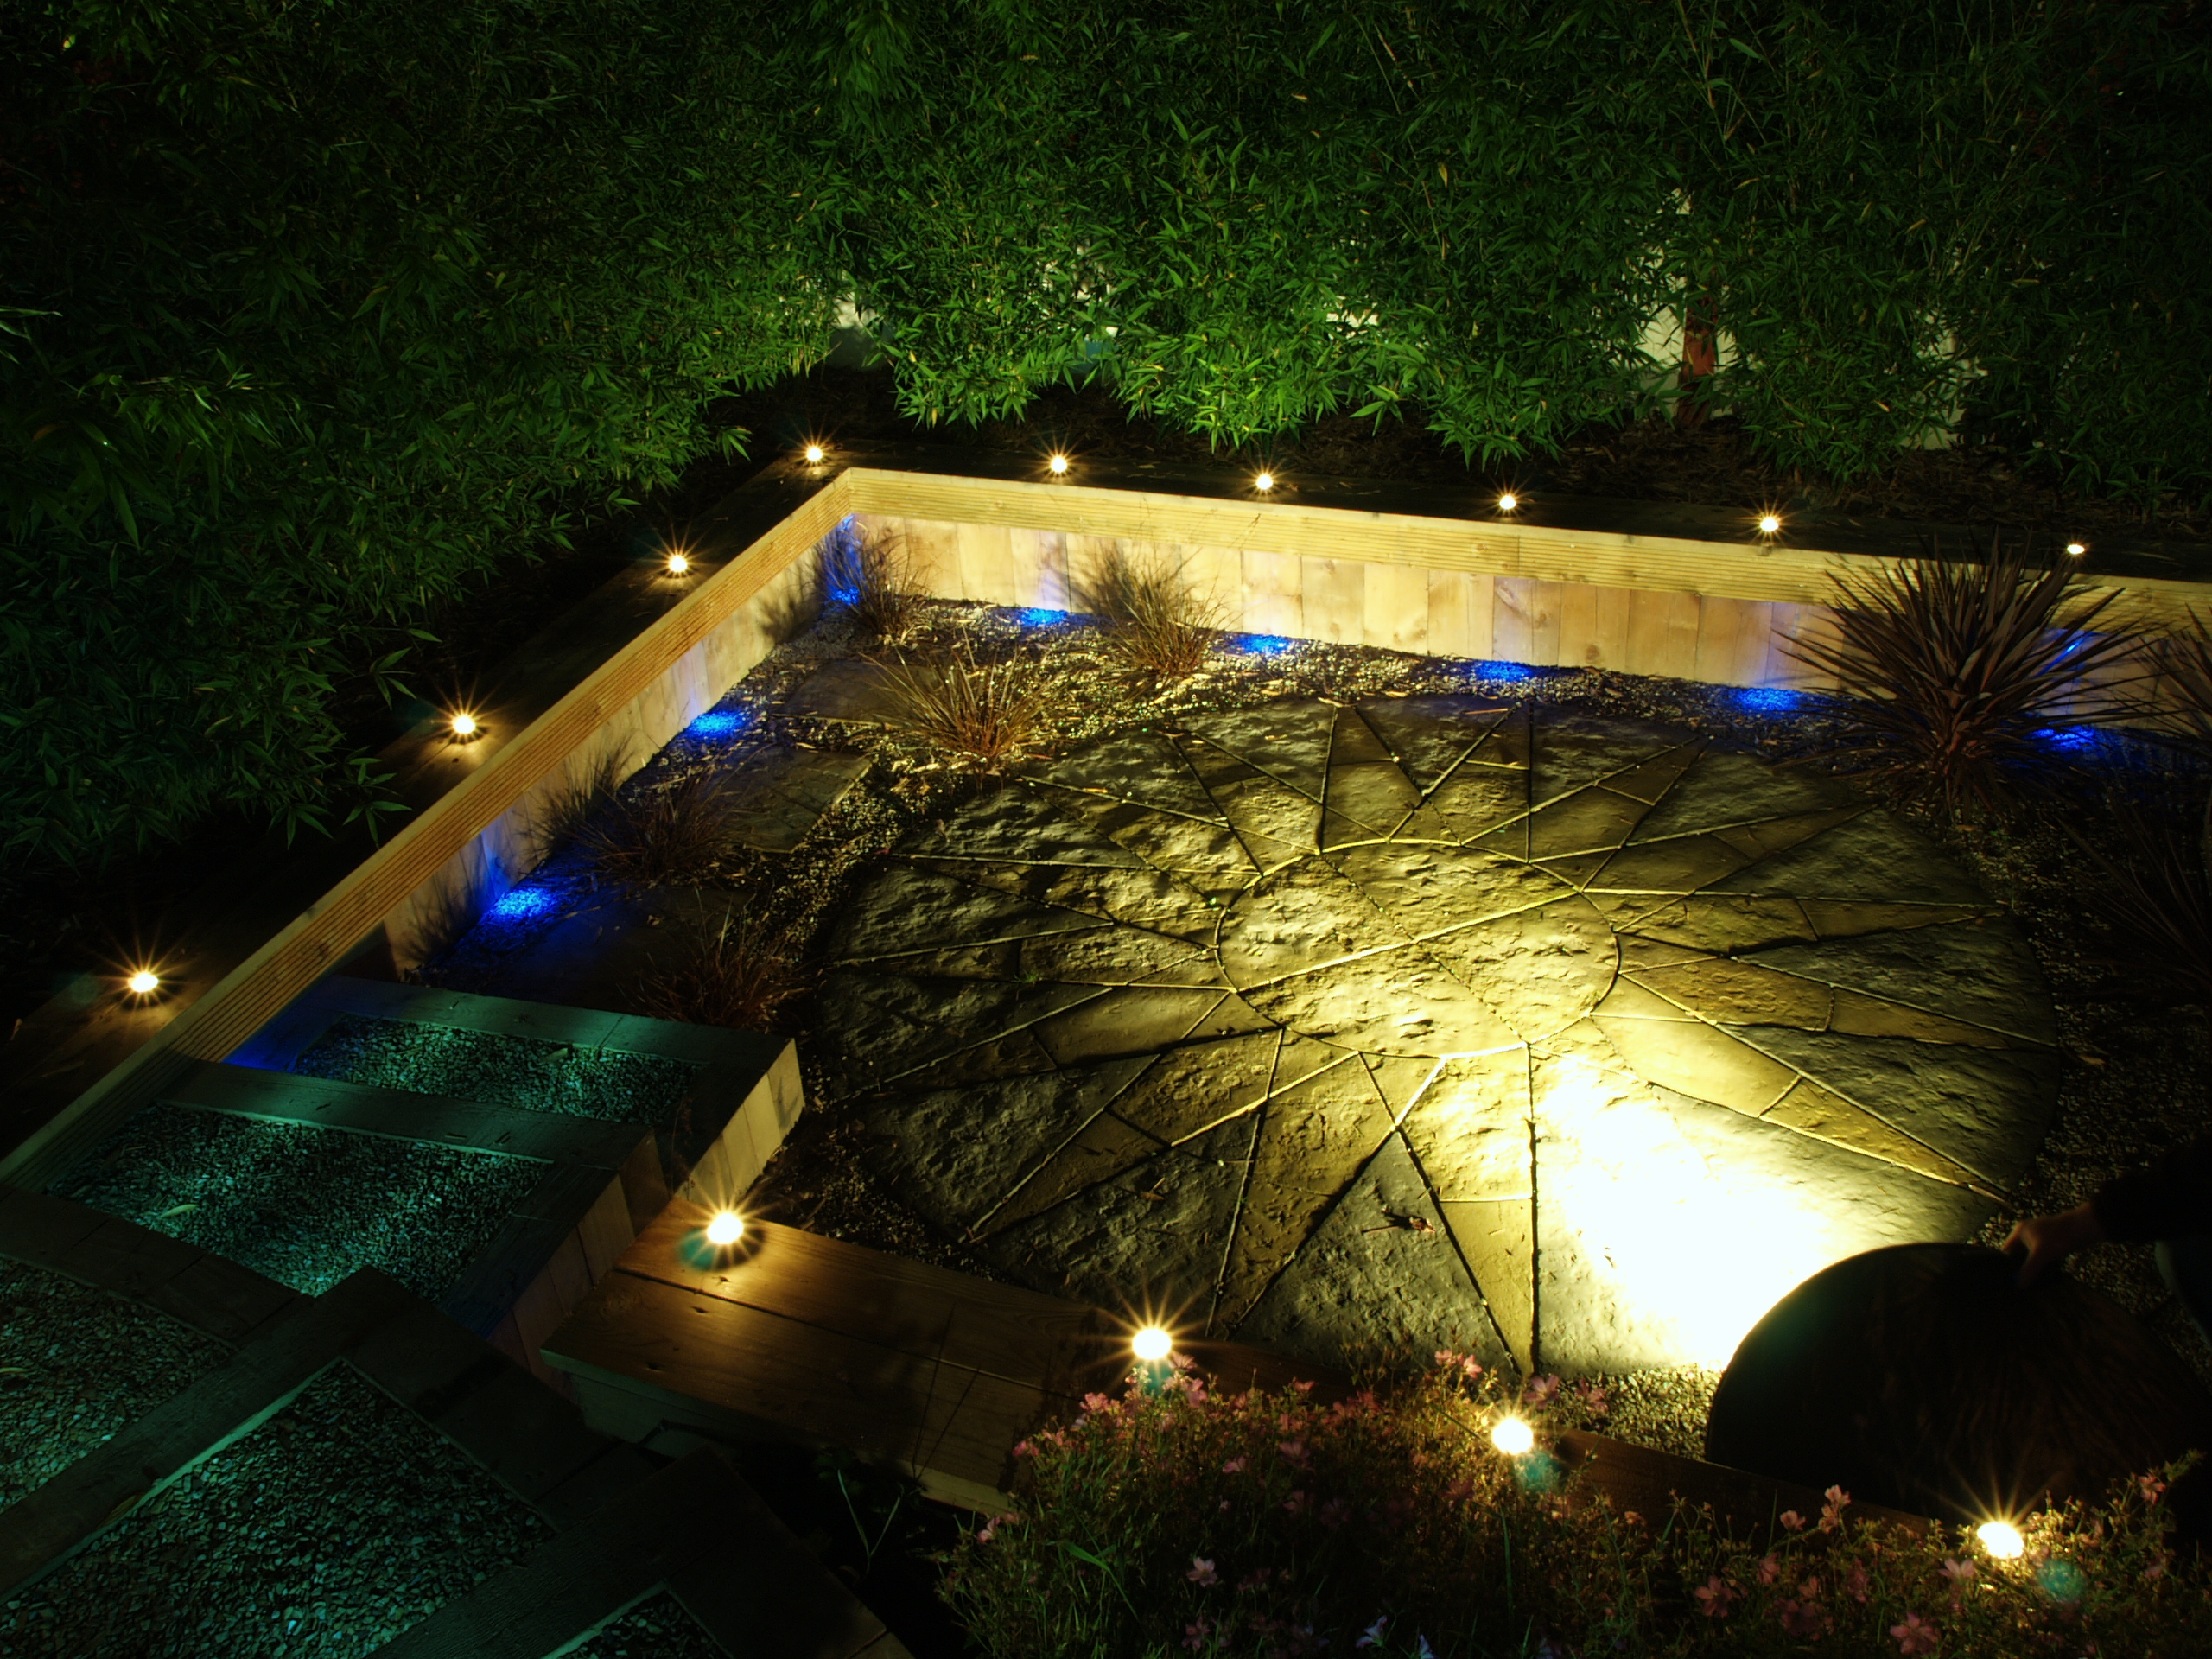 Oudoor garden lighting design shankill dublin ireland for Garden design jobs ireland